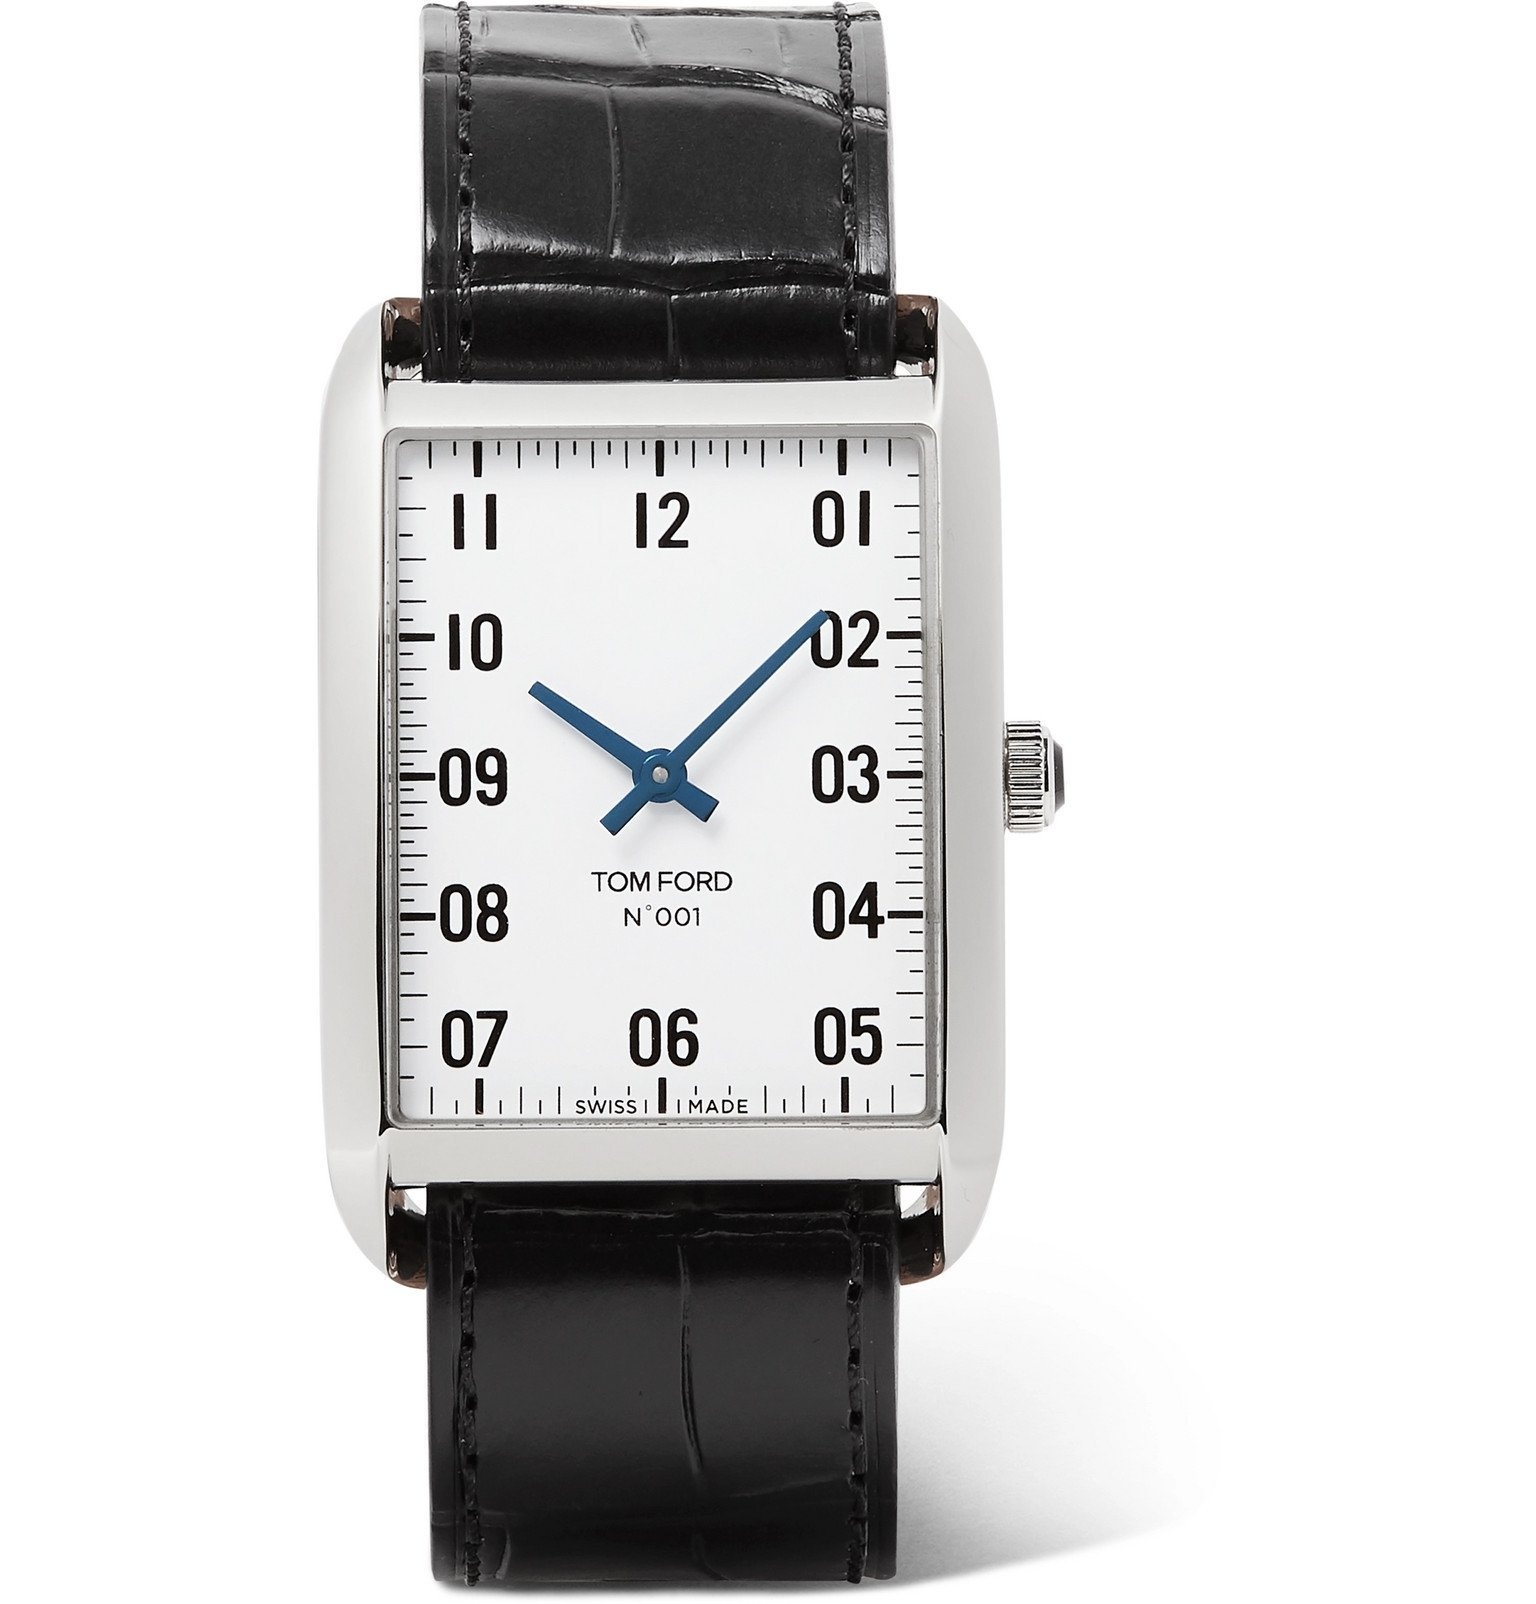 Tom Ford Timepieces - 001 Stainless Steel and Alligator Watch - White